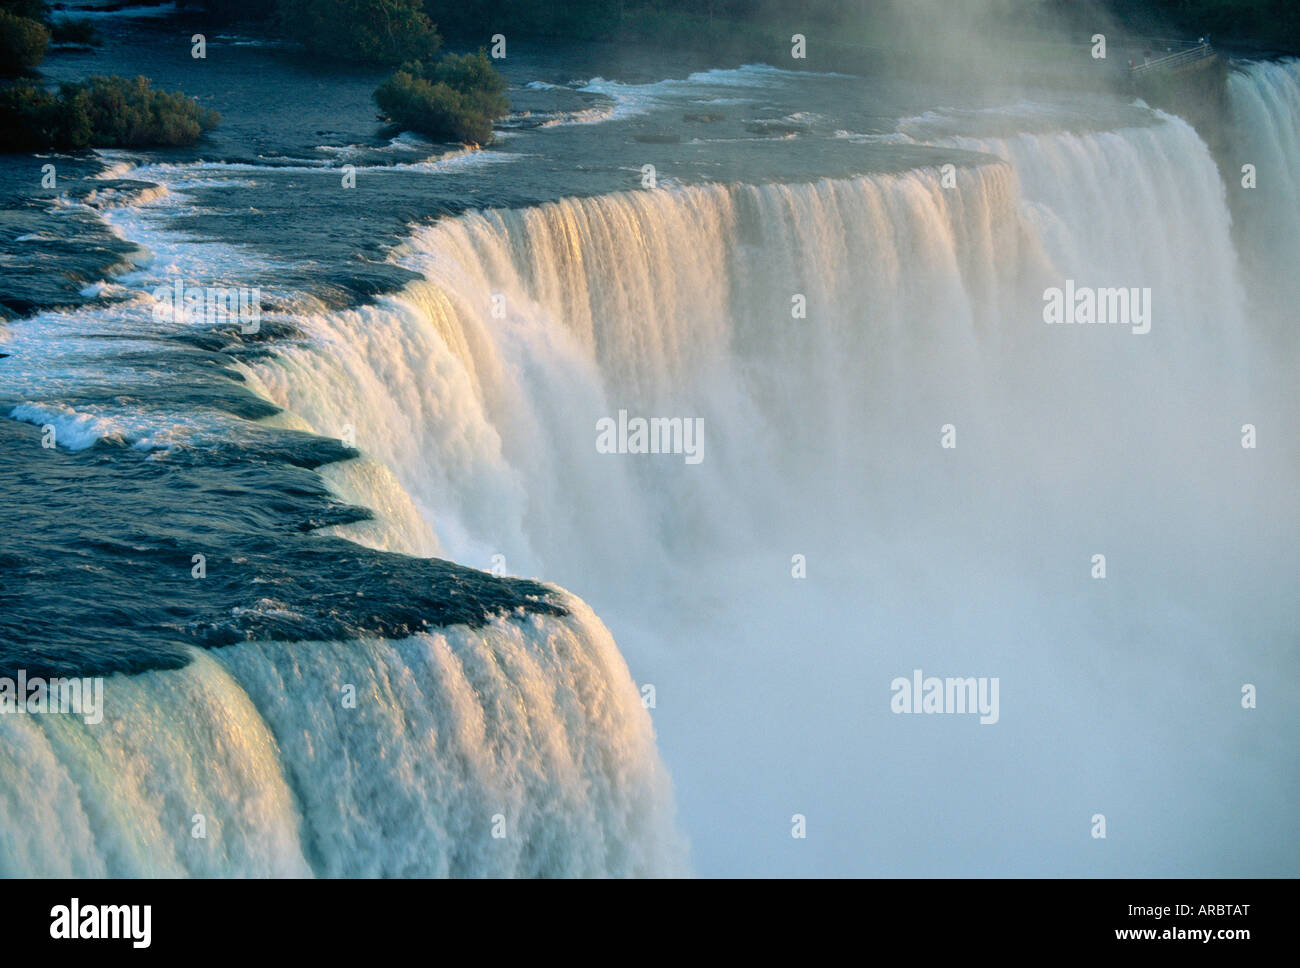 The American Falls at the Niagara Falls, New York State, USA - Stock Image